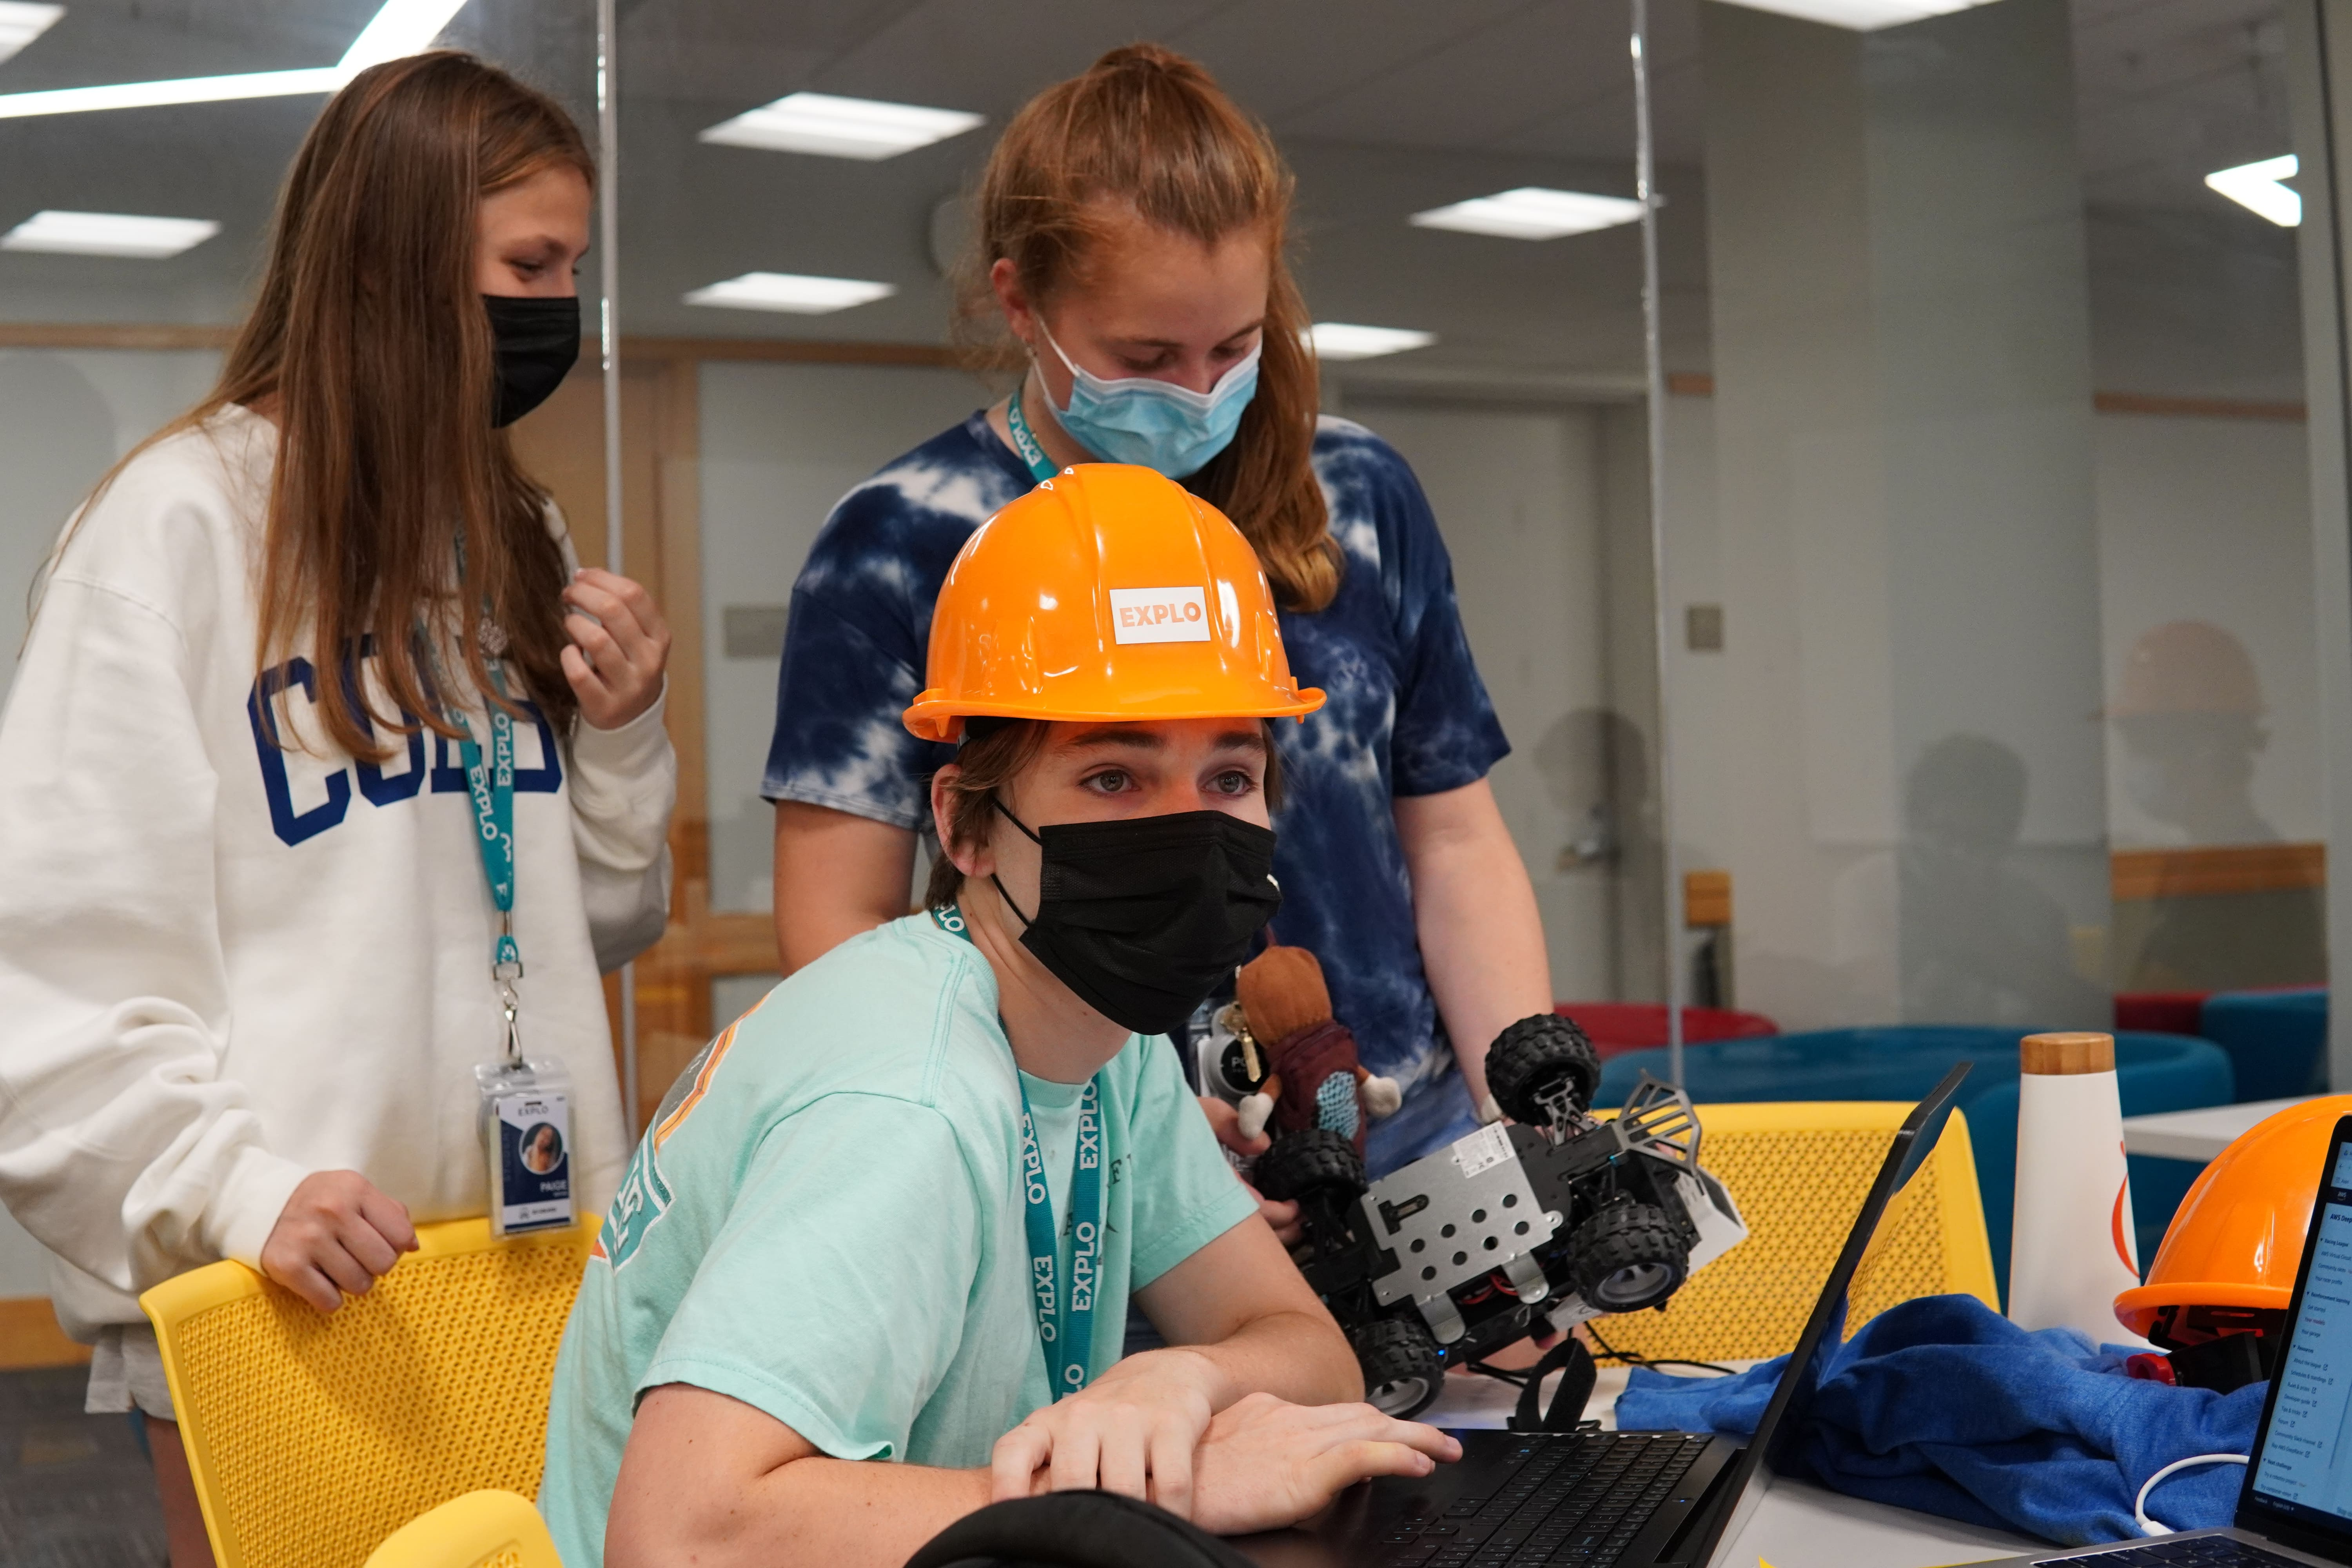 A student in an EXPLO hardhat works on their computer as two students behind them examine their car.